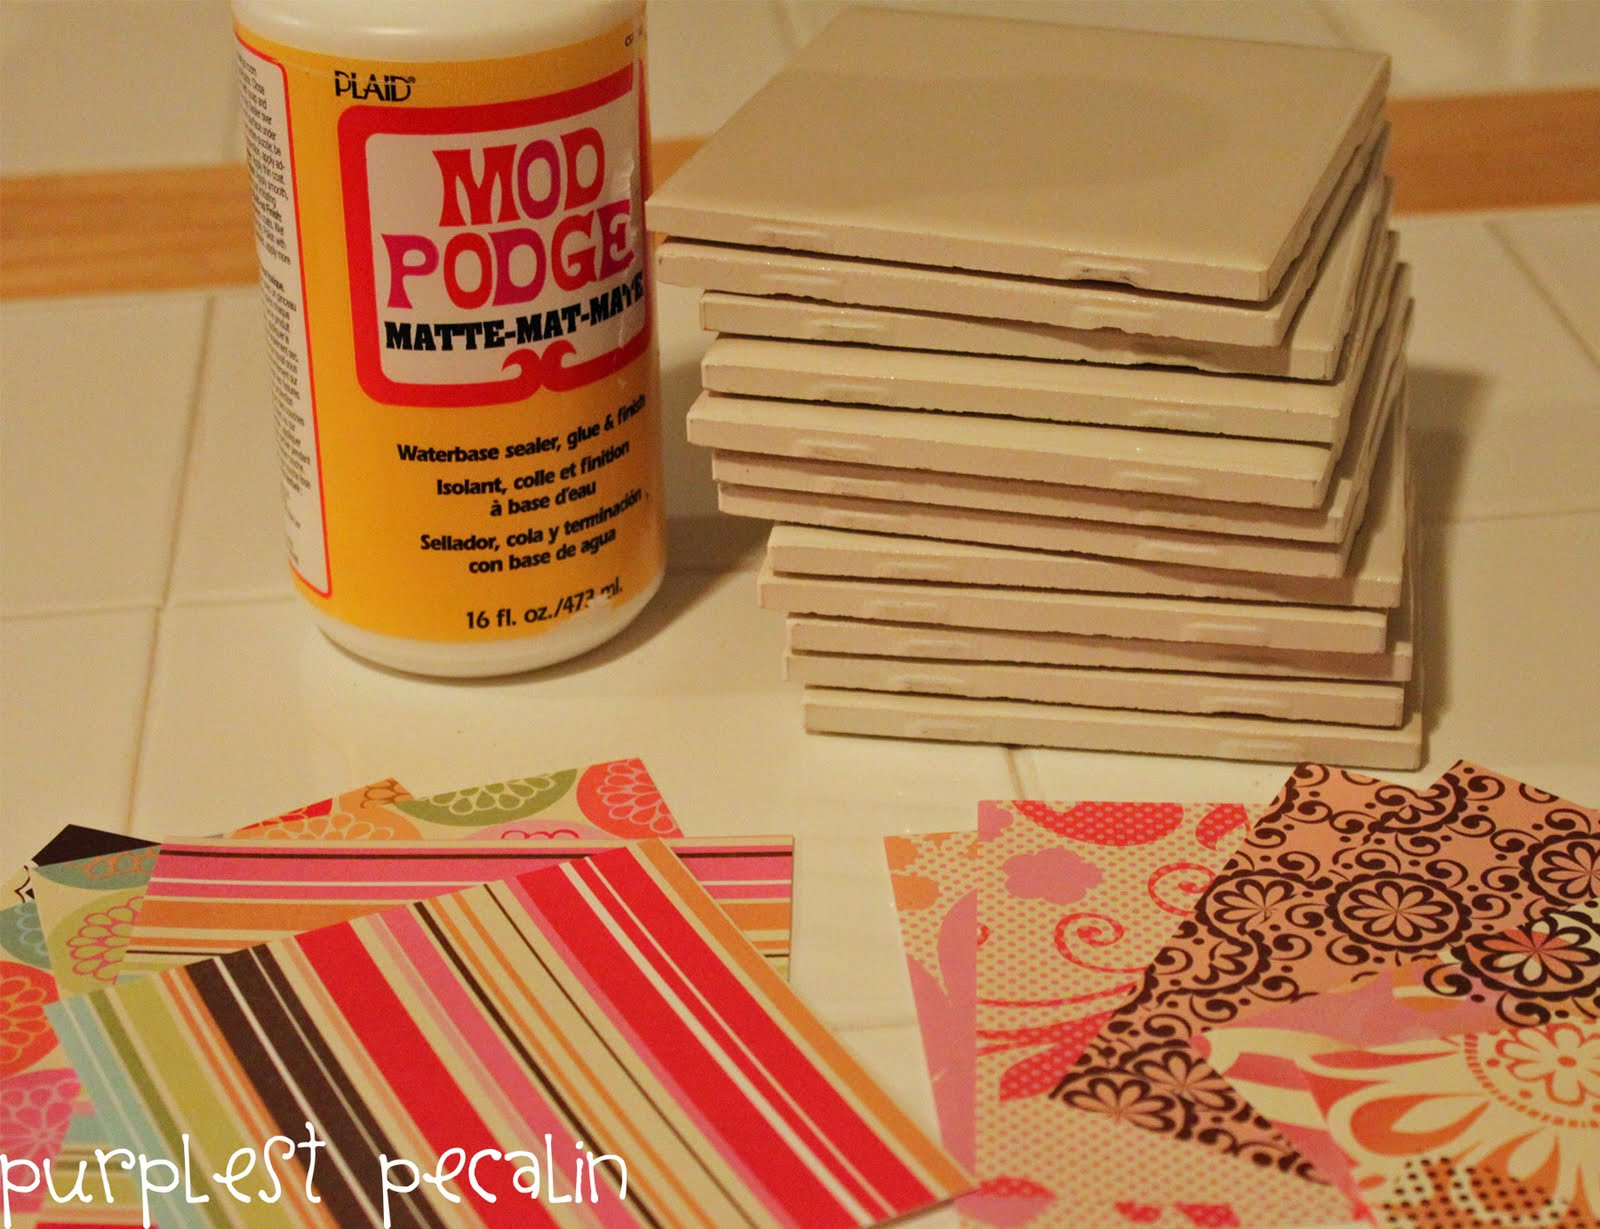 Best ideas about DIY Coaster Tiles . Save or Pin Purplest Pecalin DIY Coaster Tiles [Pinterest Challenge Now.